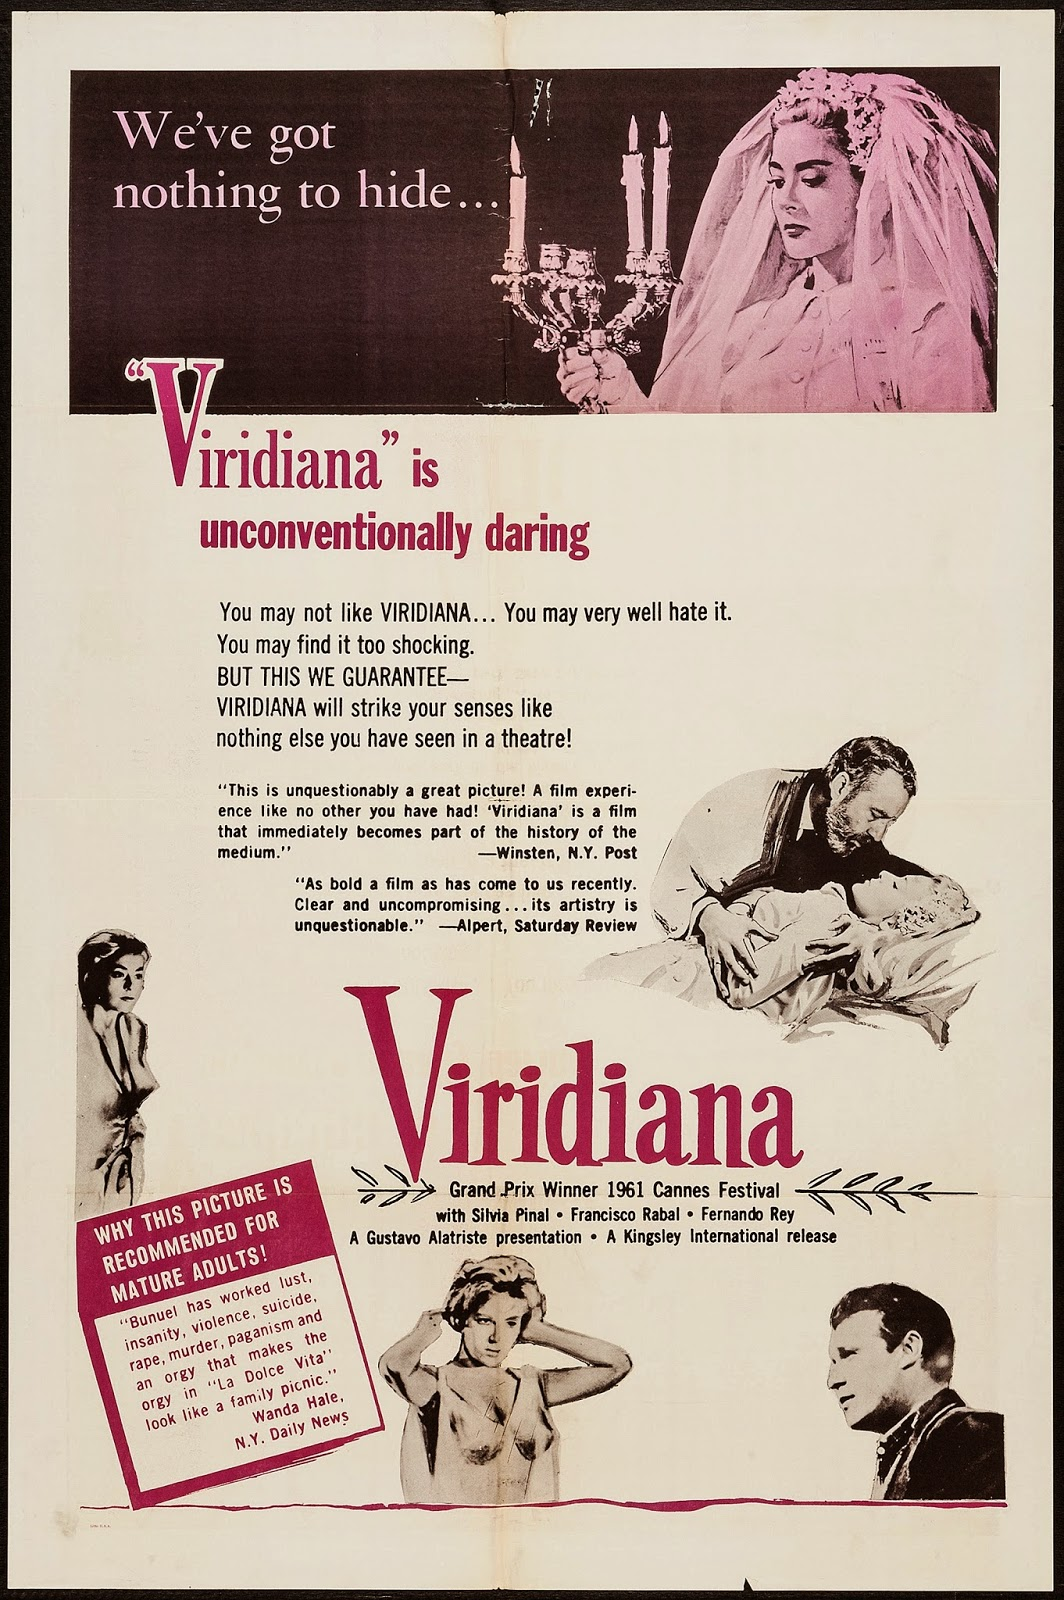 Viridiana (1961) - Directed by:Luis BunuelStarring: Silvia Pinal, Francisco RabalRated: Not RatedRunning Time: 1h 30mTMM Score: 3 StarsSTRENGTHS: ThemesWEAKNESSES: Dark Point of View